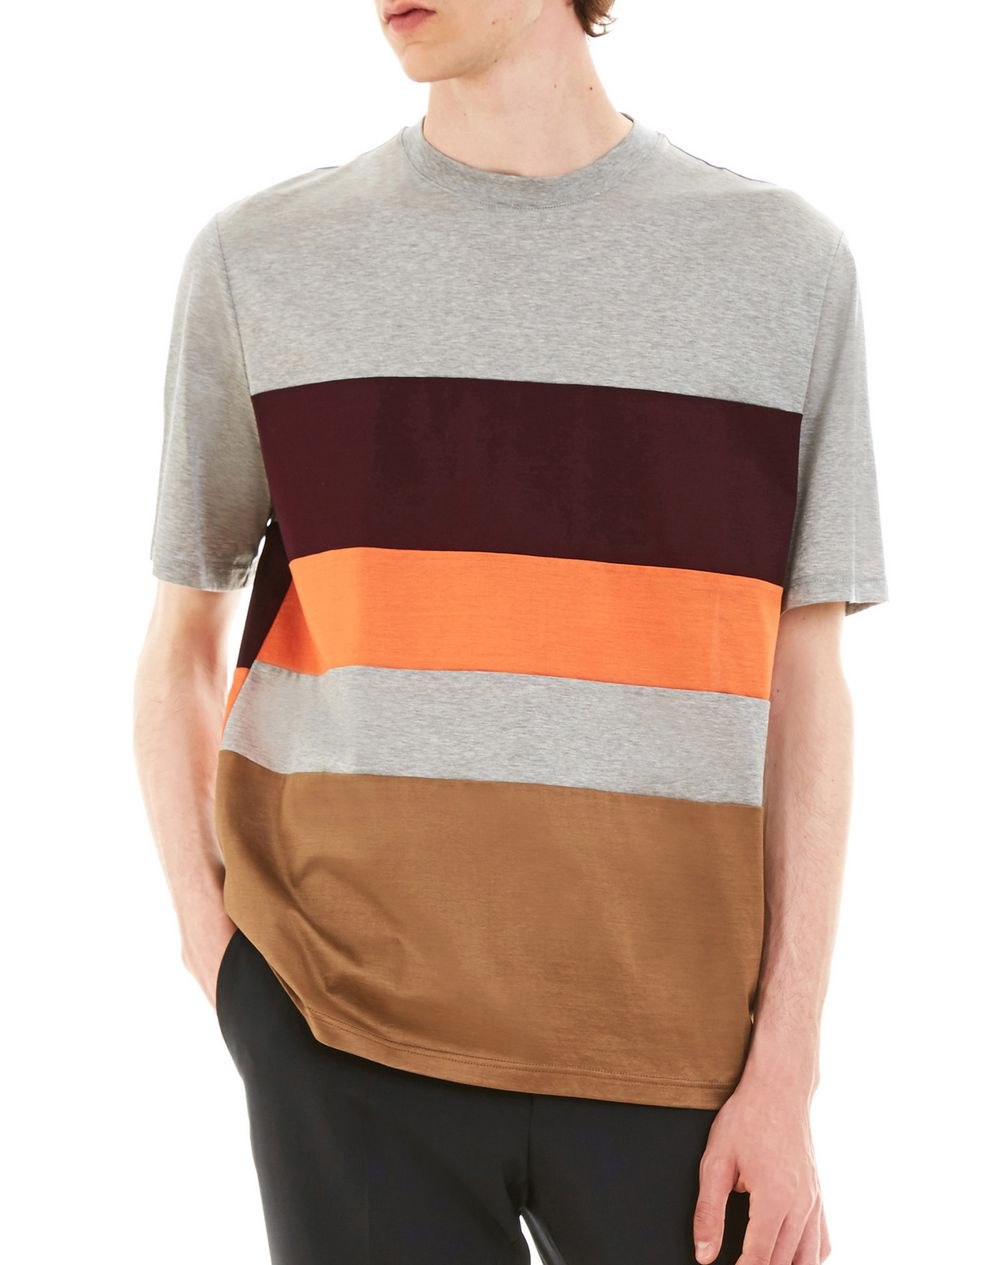 T-SHIRT WITH COLORED INSETS - Lanvin